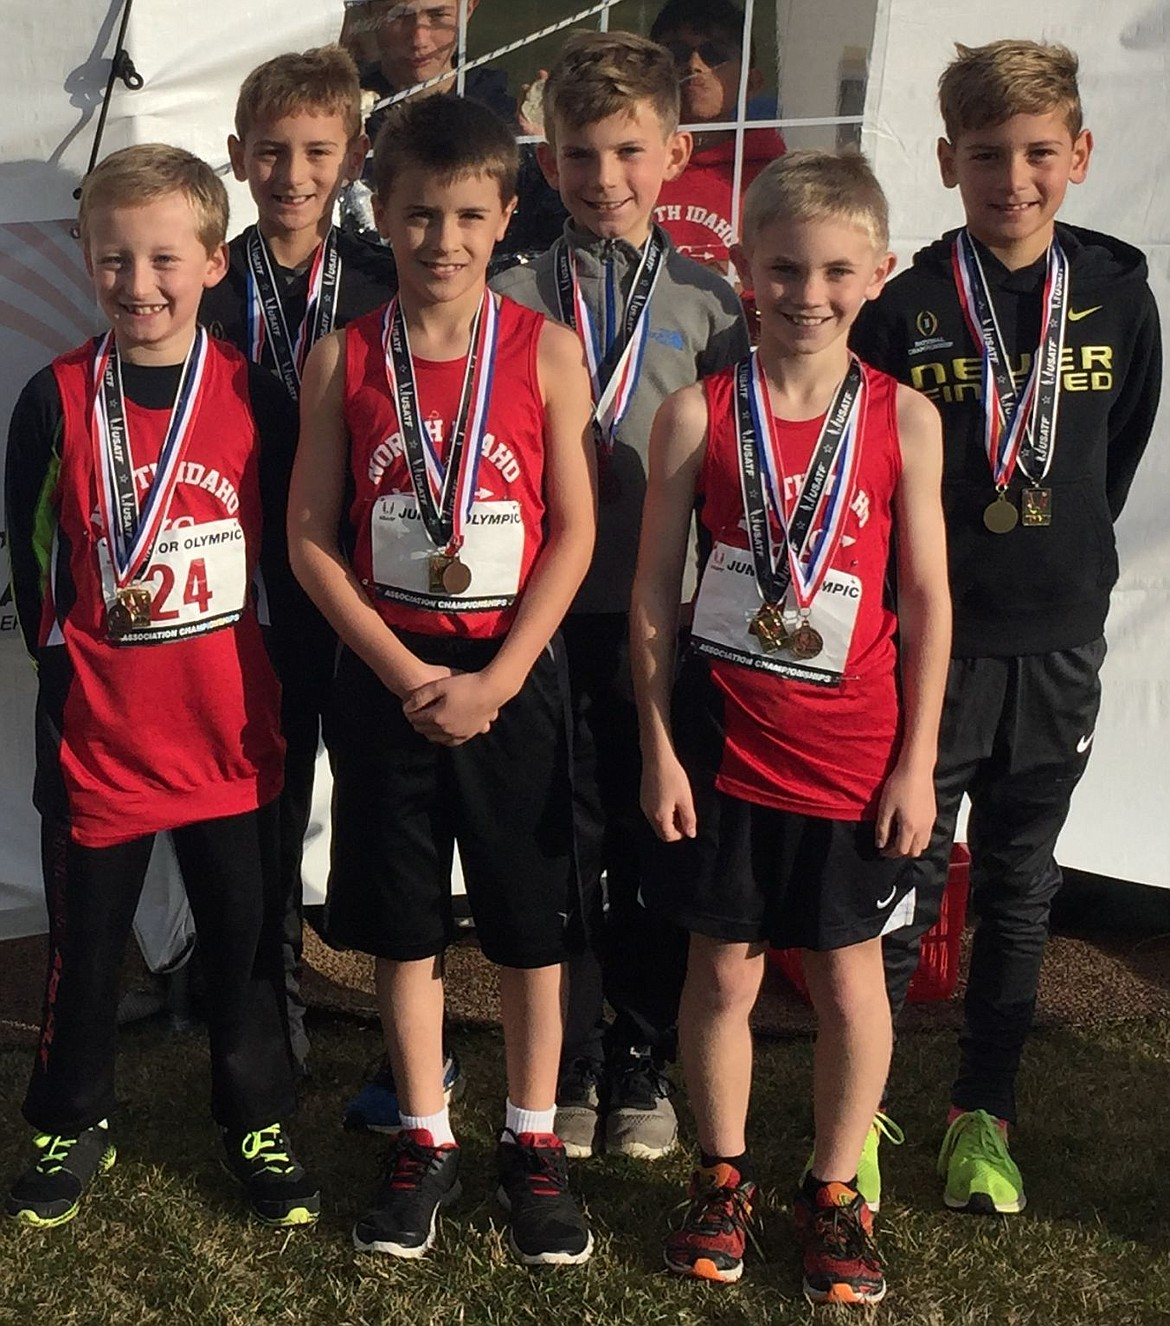 <p>Courtesy photo</p><p>The North Idaho Cross Country boys age 9-10 team placed first at the USA Track and Field Junior Olympic Cross Country Inland Northwest District finals in Mead, Wash., on Saturday. They ran a 3,000-meter course (1.86 miles) with a team time of 1 hour, 1 minute, 20.31 seconds. In the front row from left are Alex Jones (7th, 12:59.22), Lars Bazler (12th, 13:34.45) and Zach Anderson (6th, 12:52.31); and back row from left, Max Cervi-Skinner (5th, 12:13.30), Lachlan May (4th, 12:00.29) and Zack Cervi-Skinner (1st, 11:17.20).</p>